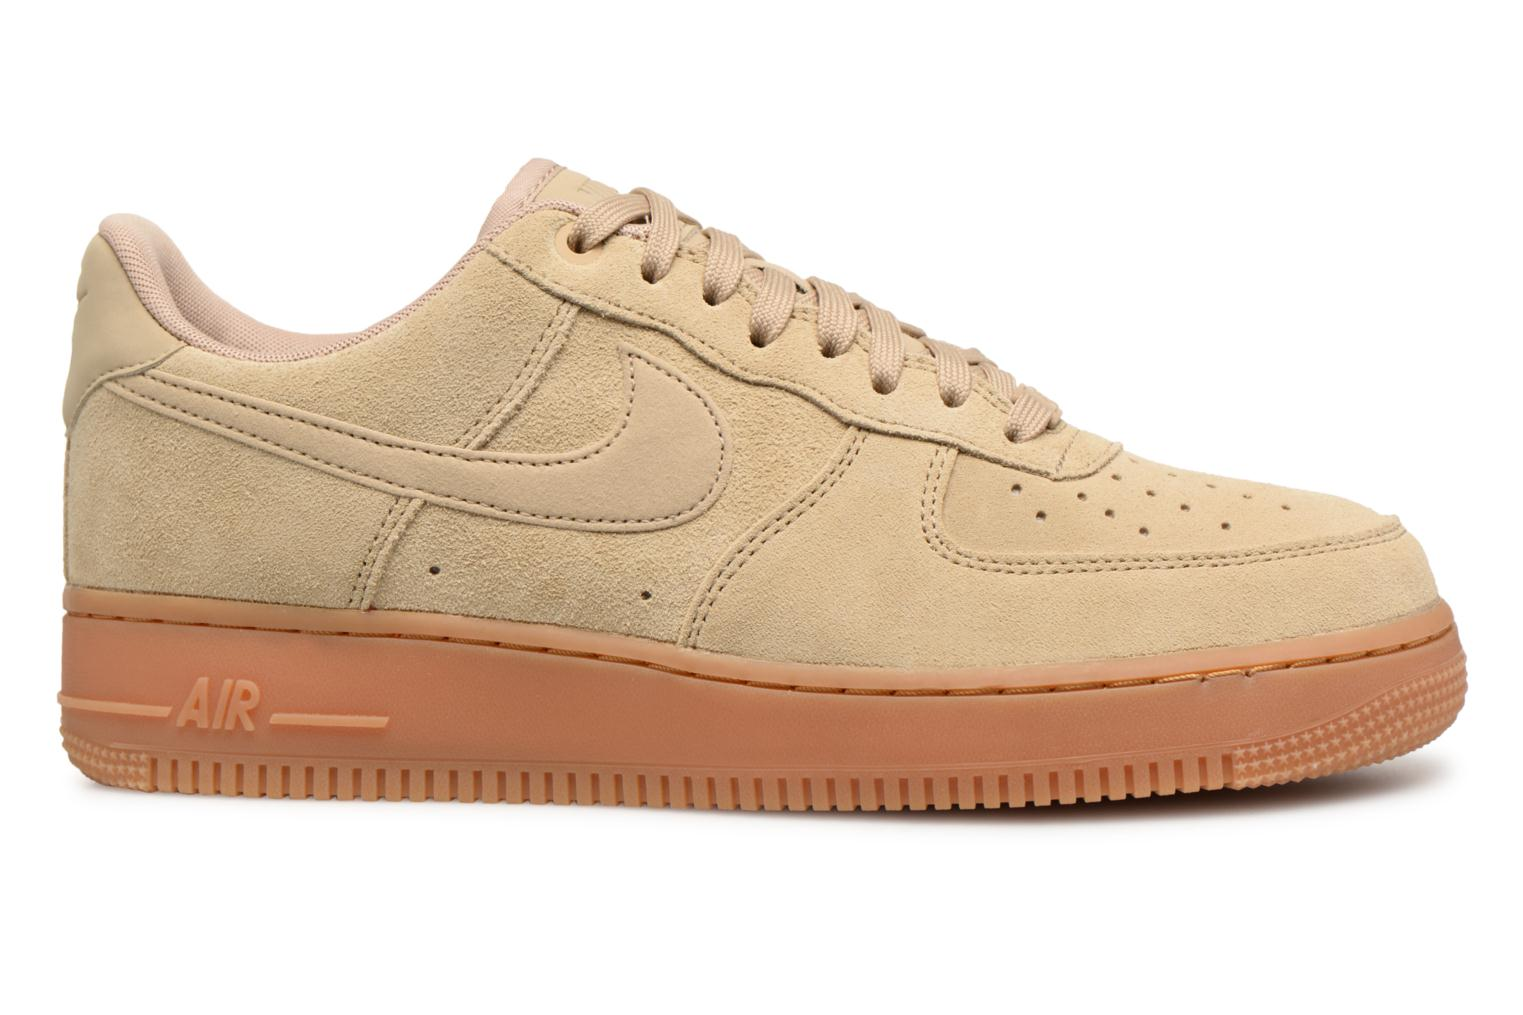 Air Force 1 '07 Lv8 Suede